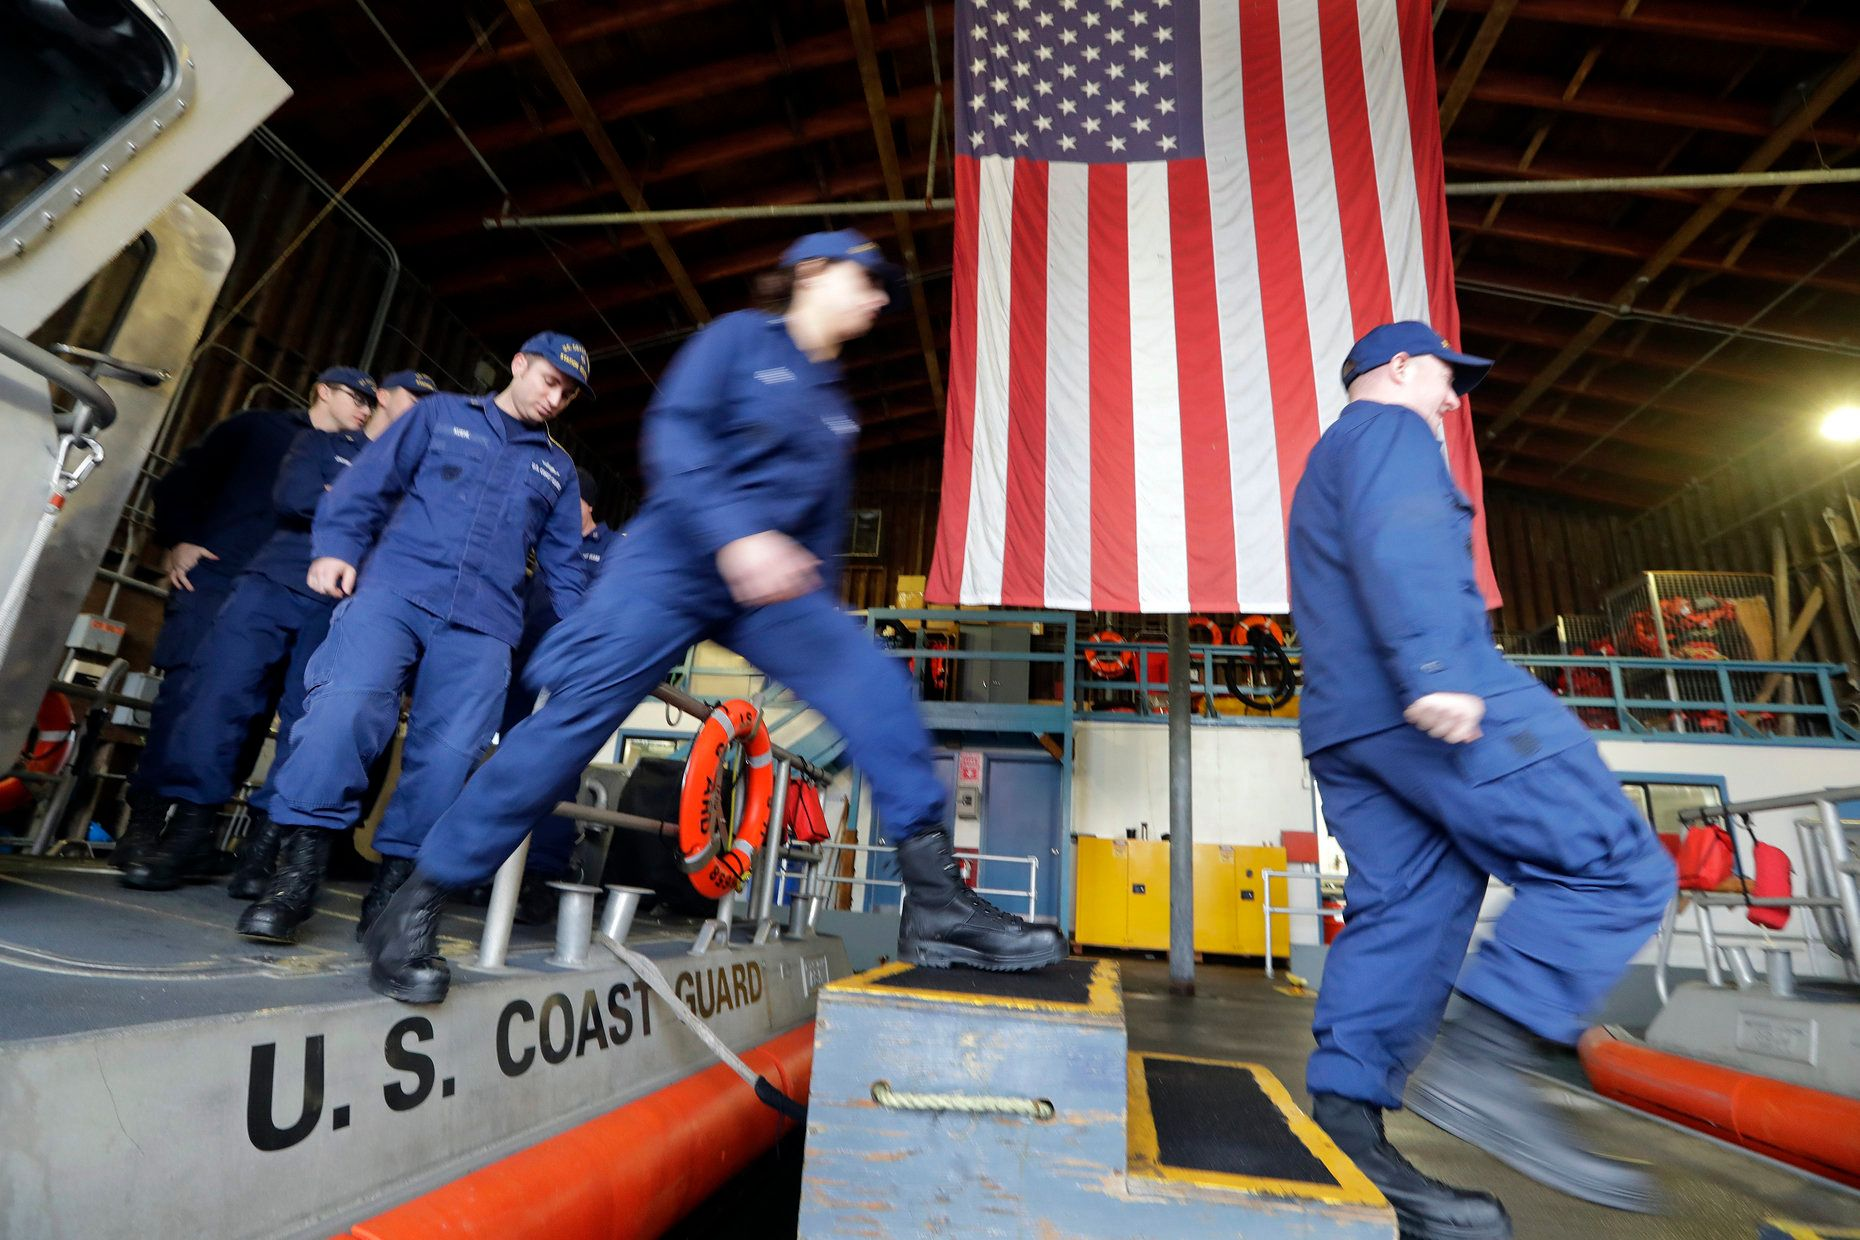 Former Coast Guard Officers Slam Washington As 'Derelict' In Not Ending Shutdown